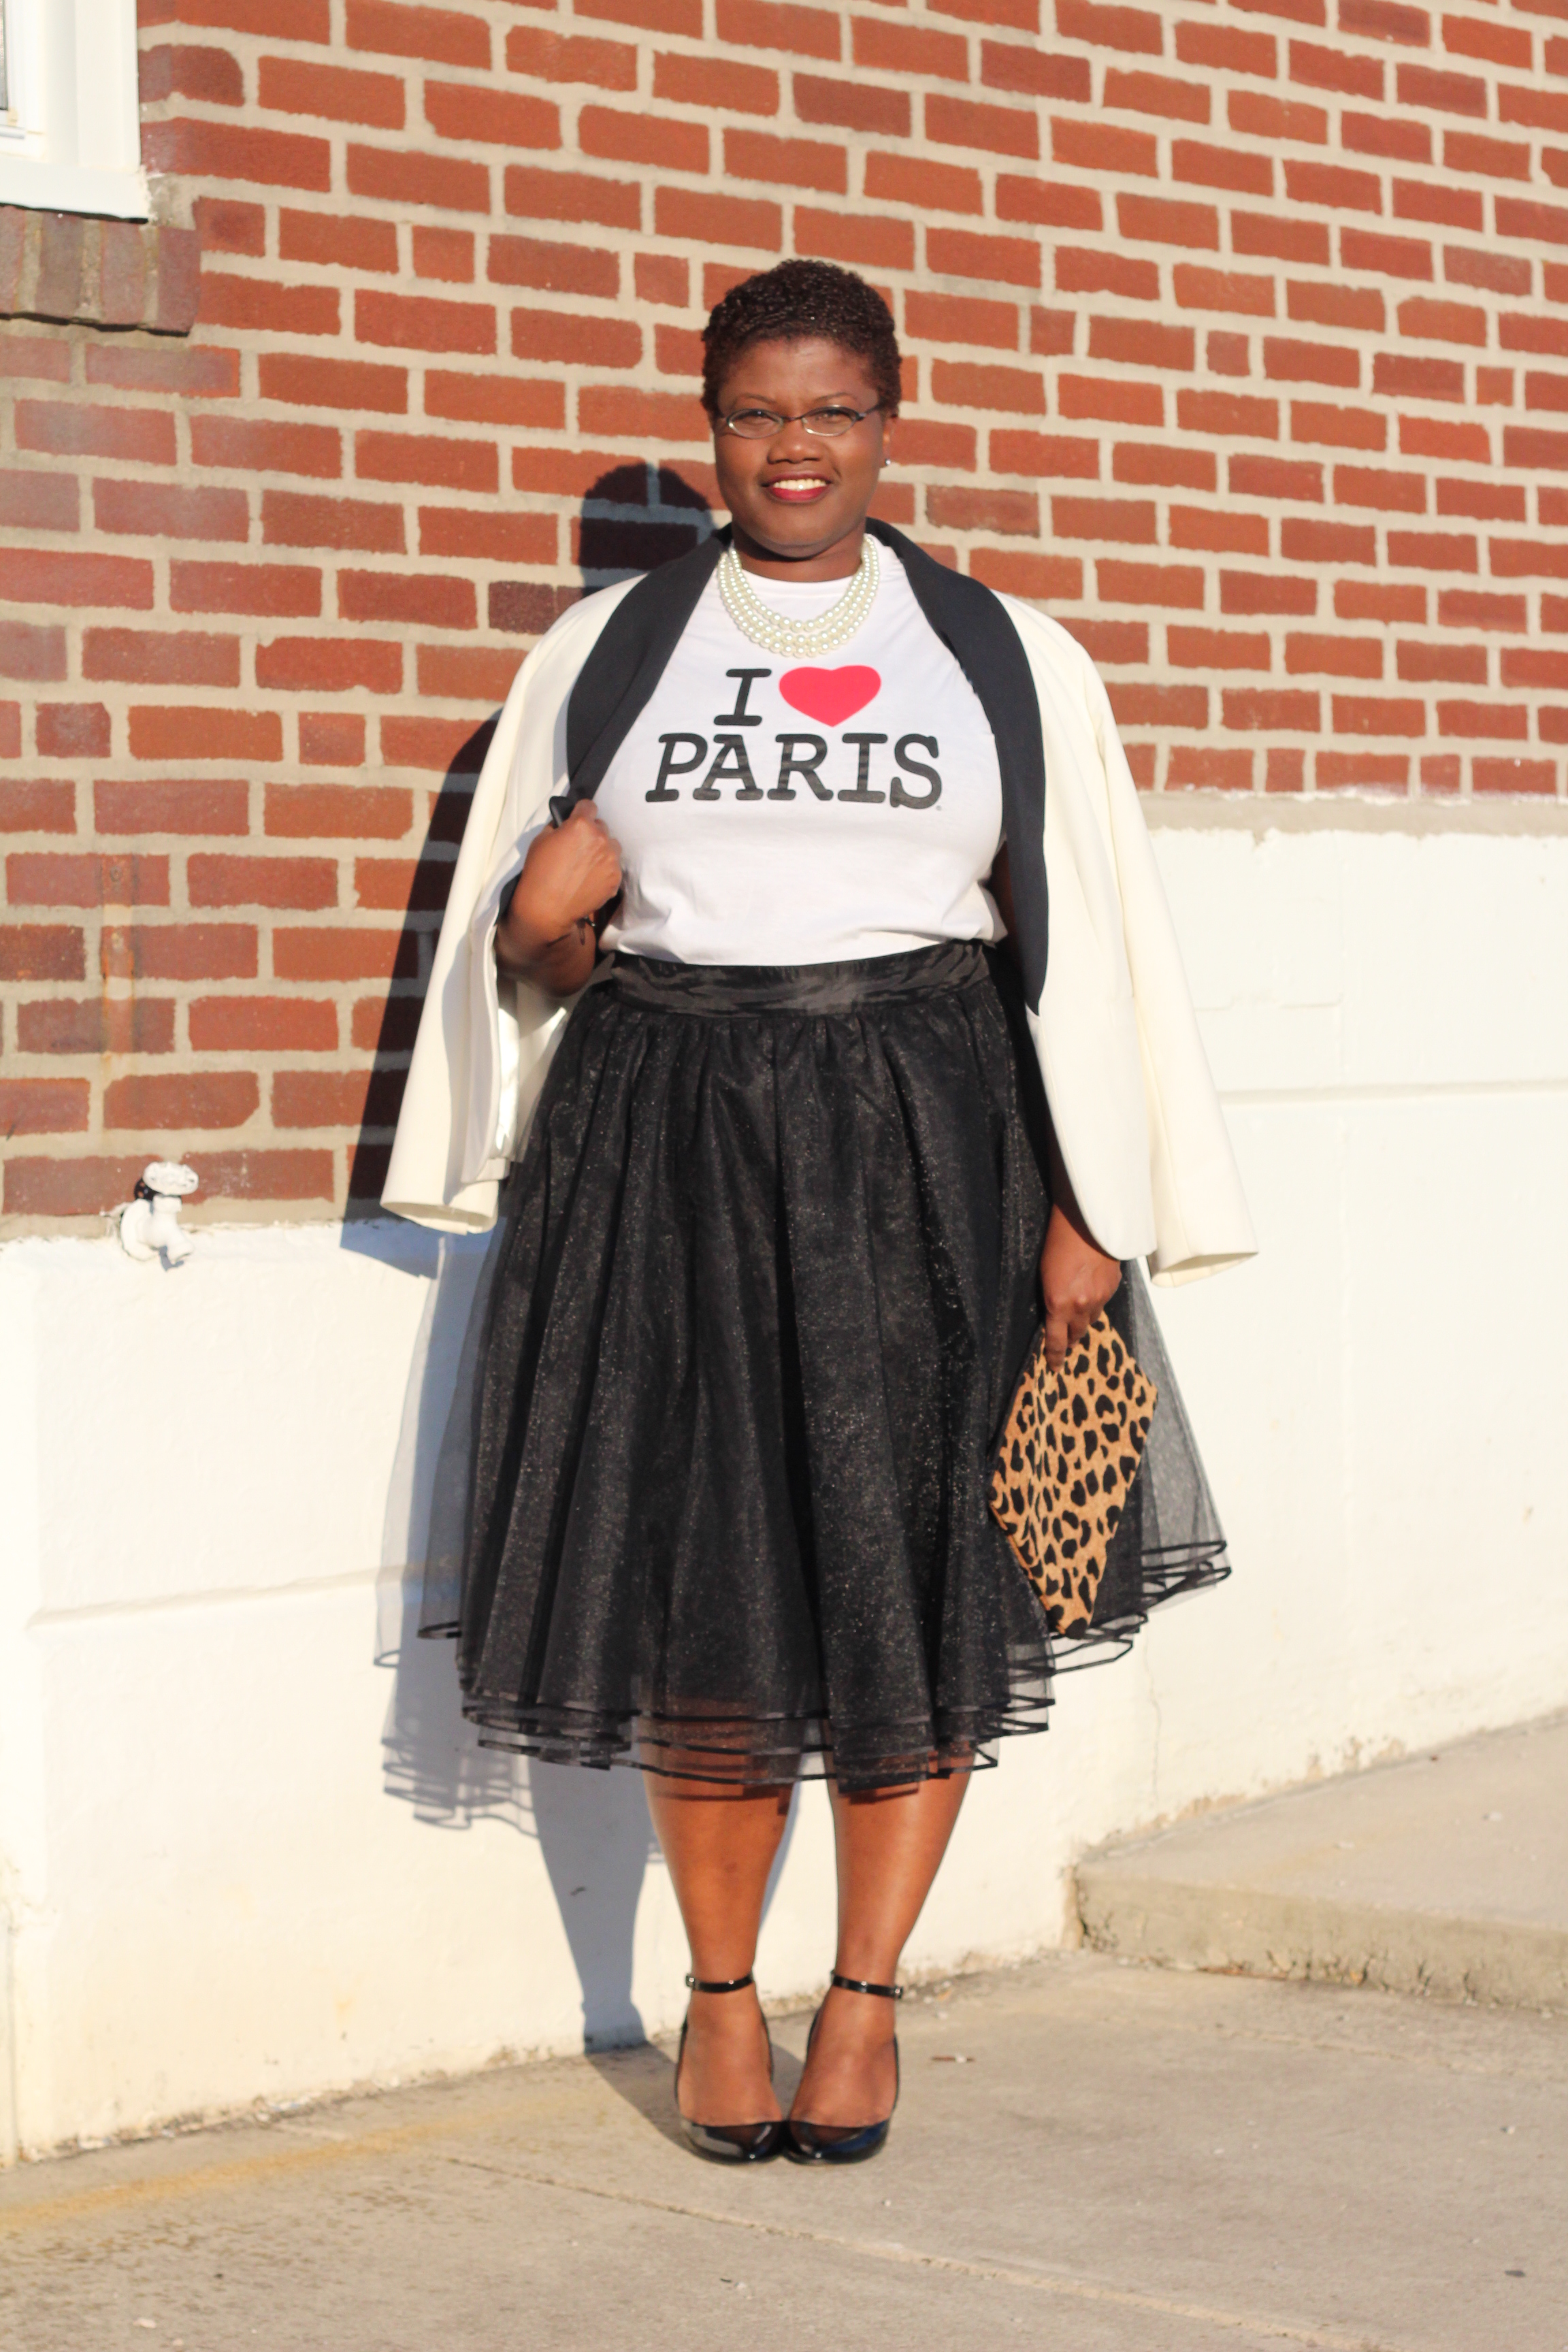 curvy women, curvy, curvy girls, simply be usa, simply be, plus size skirts, tutu, tulle skirts, eshakti, paris, leopard print, tuxedo blazer, plus size blazers, plus size clothing, 40+ bloggers, black women bloggers, black style bloggers, spring